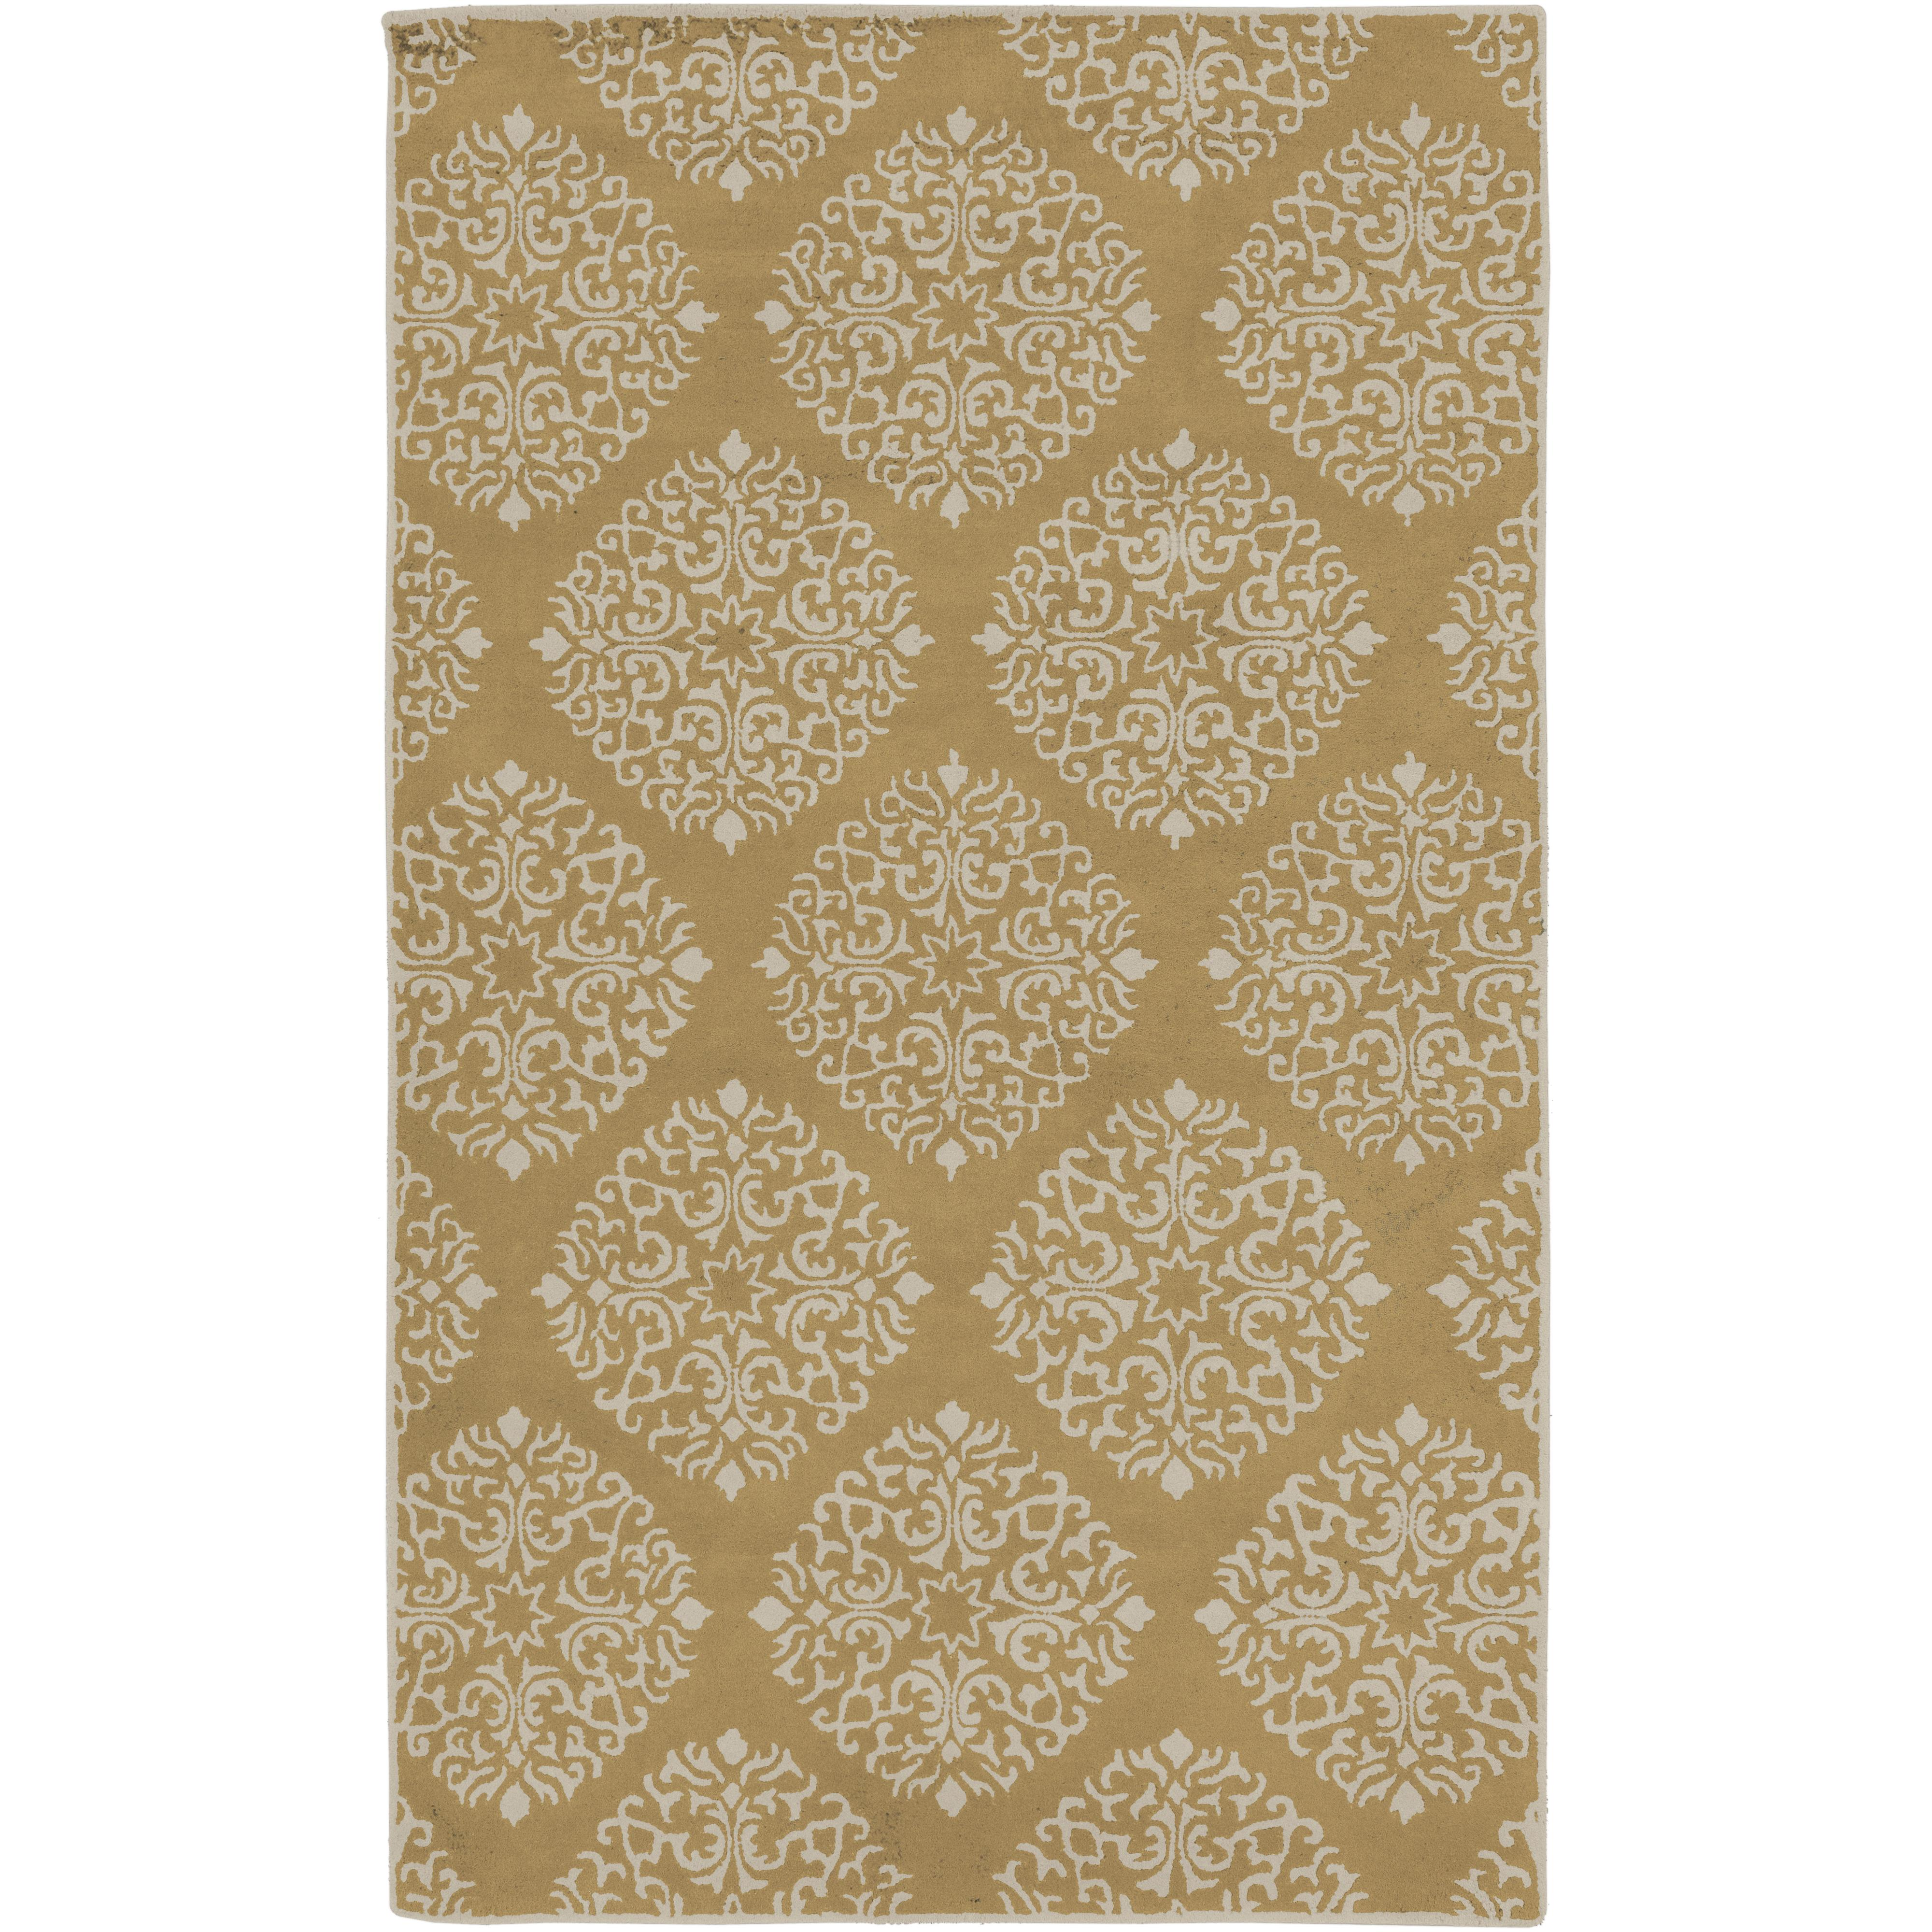 Surya Rugs Chapman Lane 2' x 3' - Item Number: CHLN9008-23